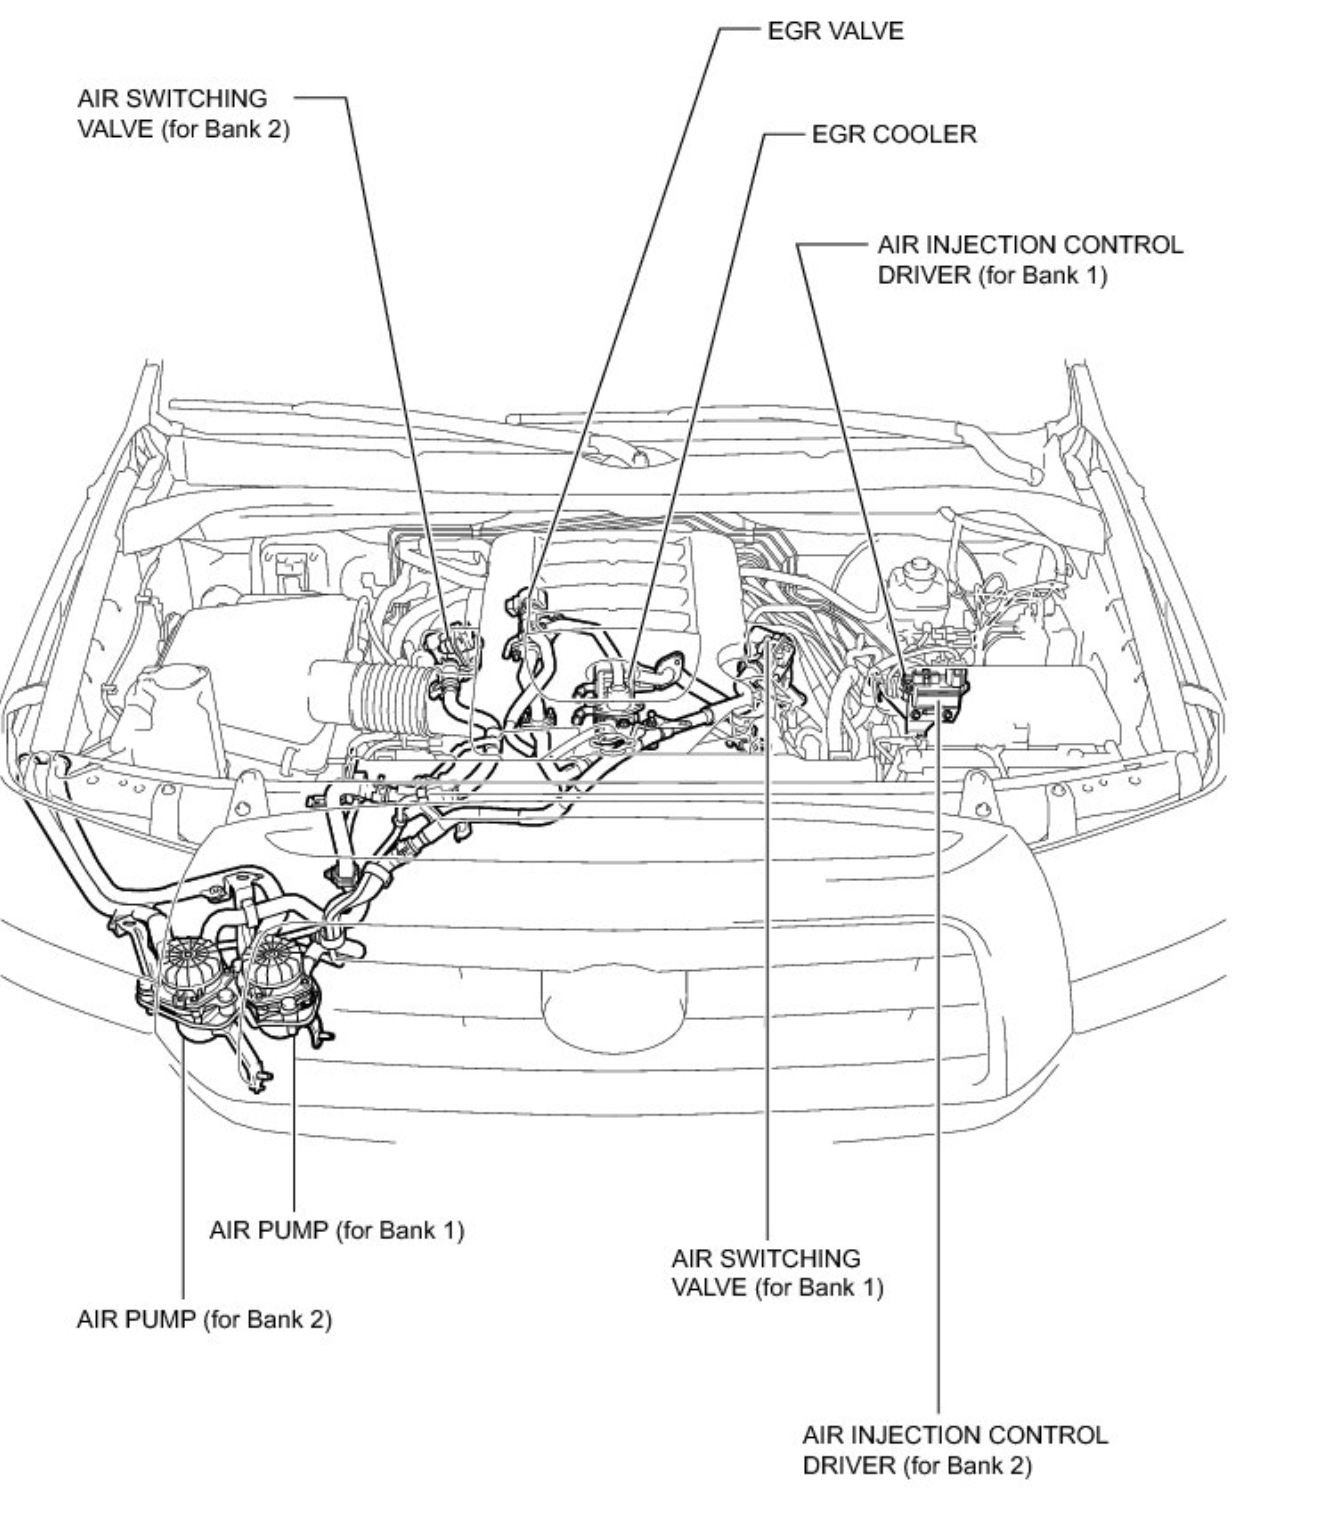 Got A P2440 Code On My 2011 Tundra 4 6 Liter V8  Wanted To Know How Difficult The Repair Is And